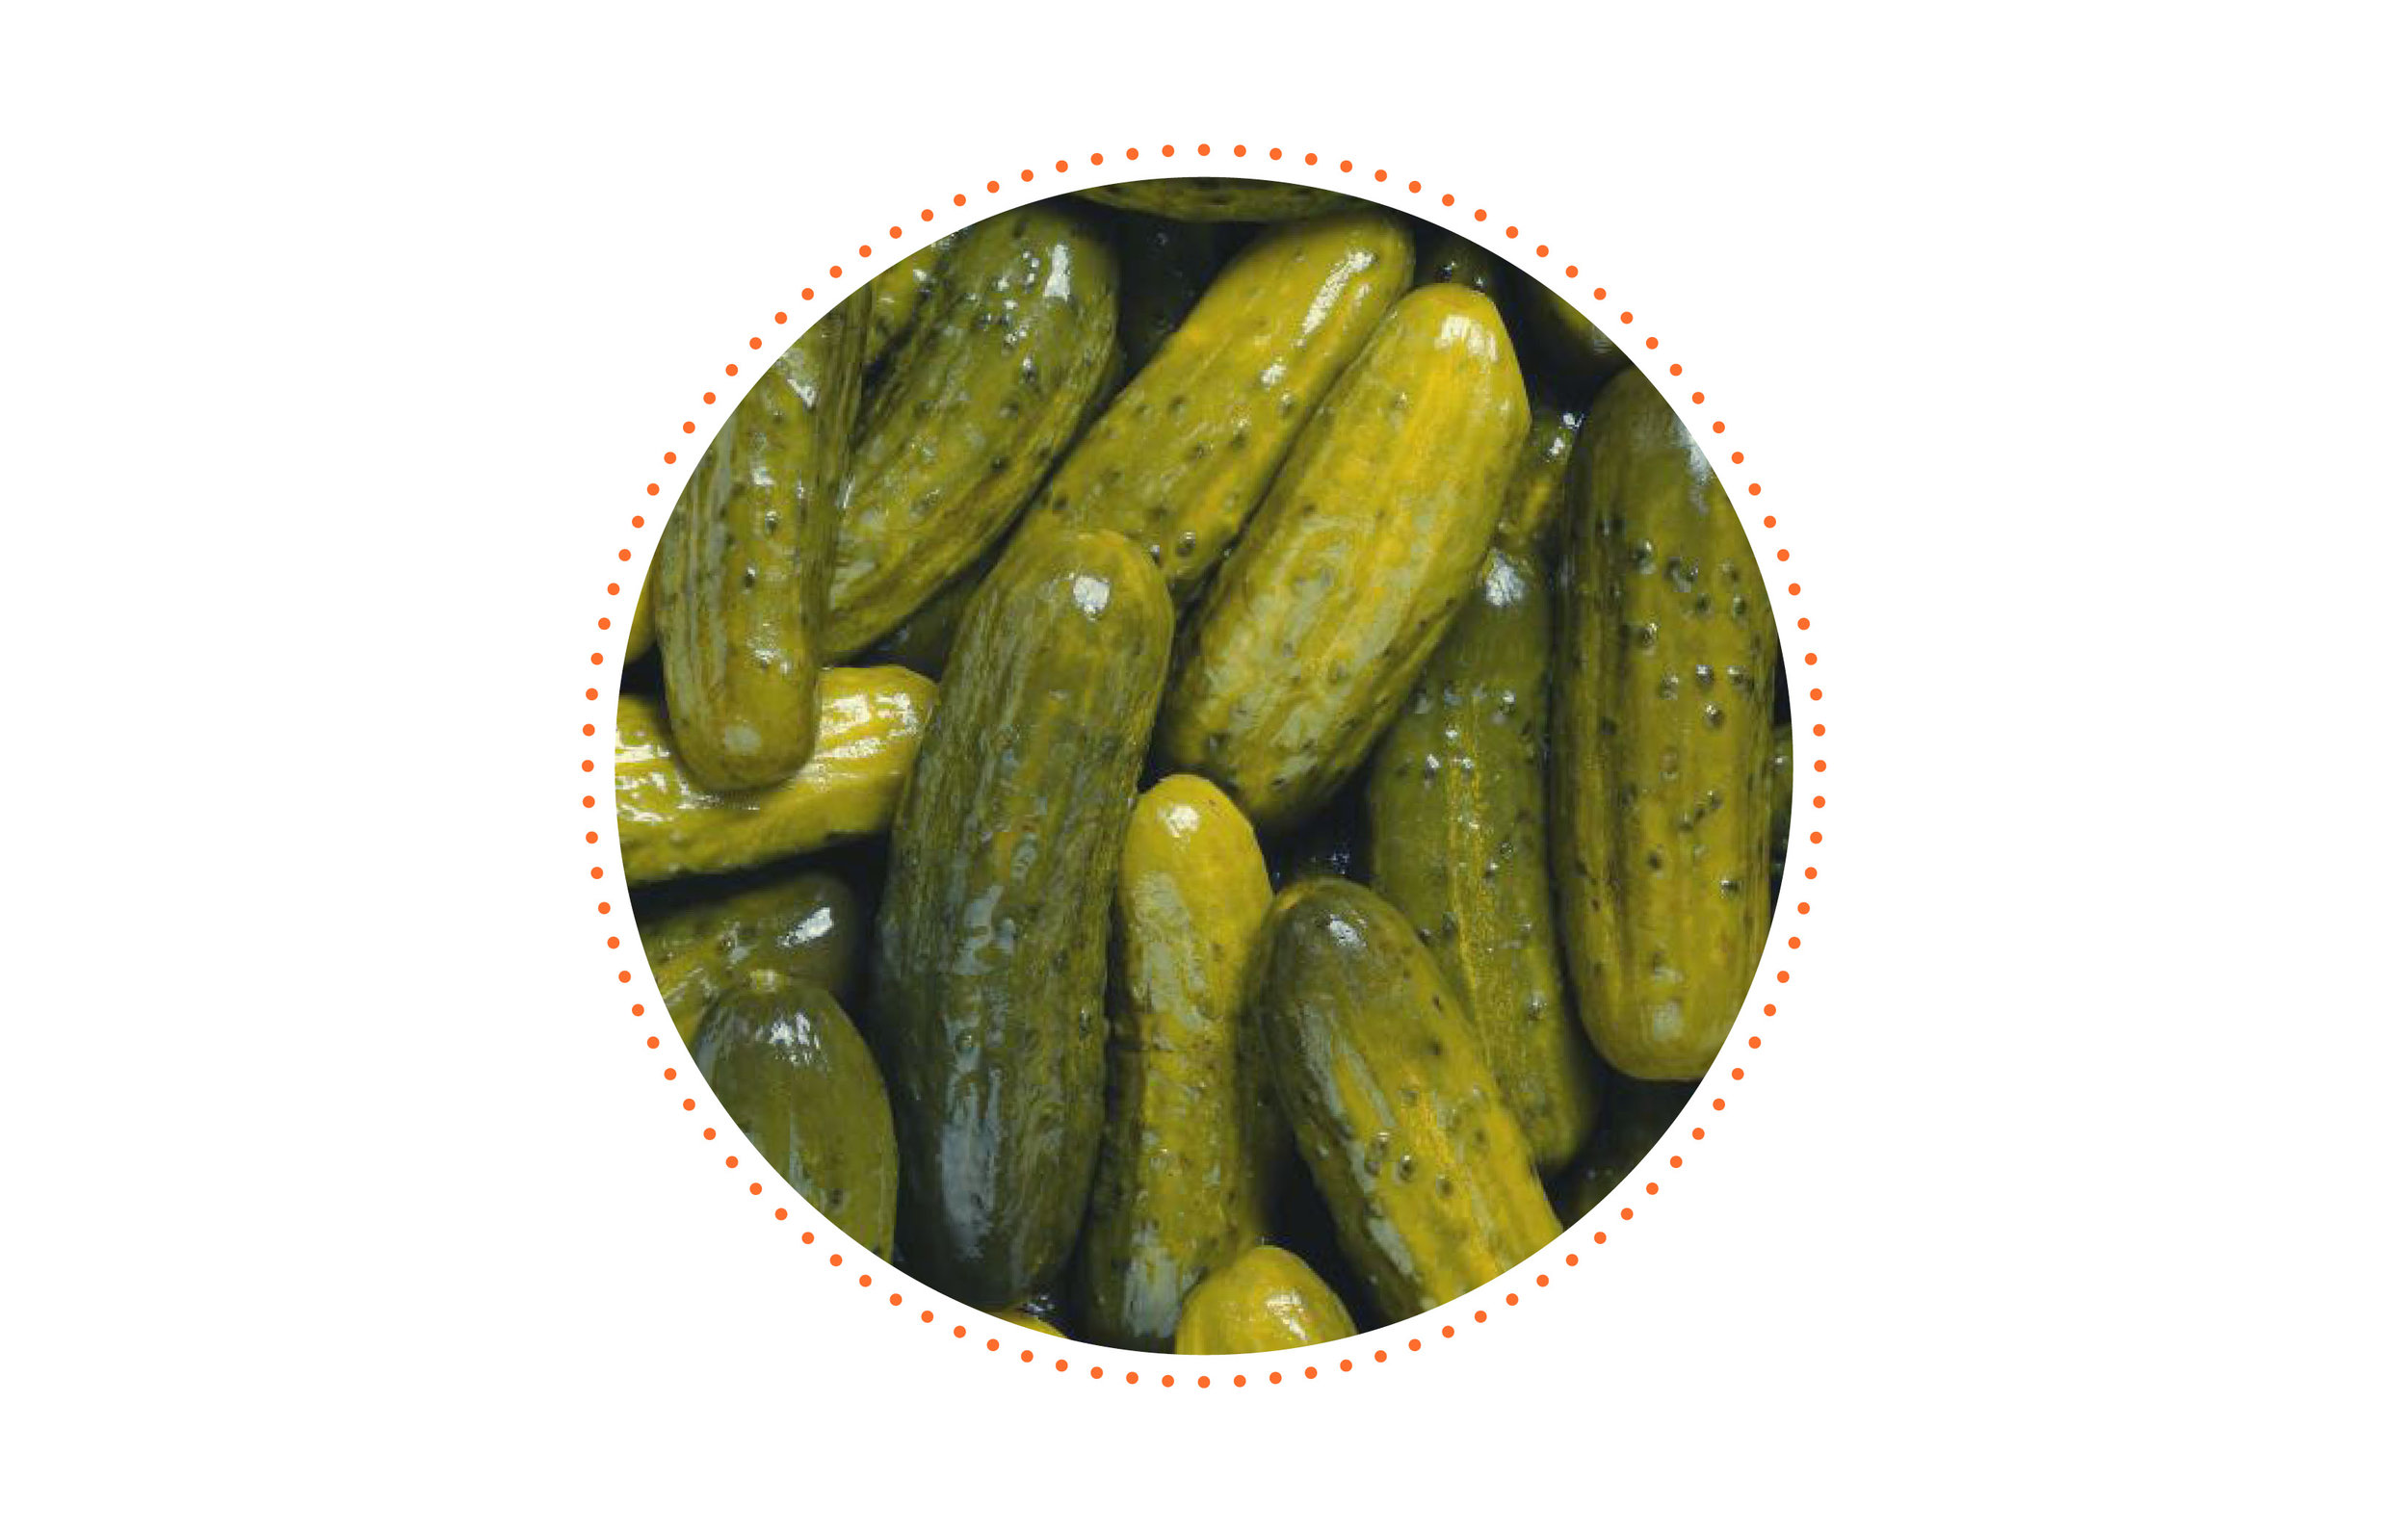 Little known fact? - I have never eaten a pickle — EVER!!! I know, I'm weird. I could write a book about the things I don't eat. It would probably make for an interesting coffee table book. haha